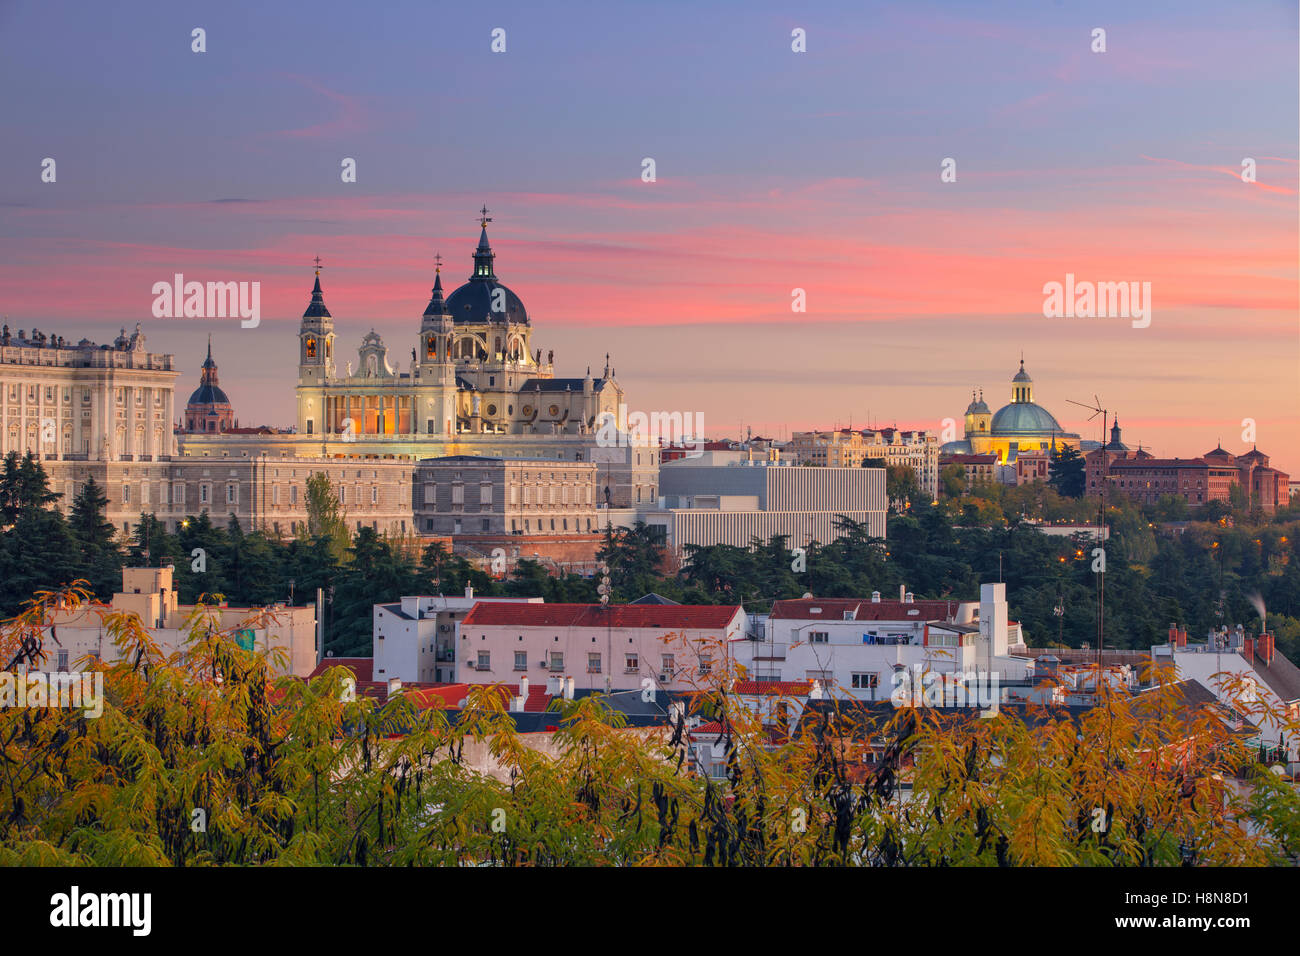 Image of Madrid Skyline with Santa Maria la Real de La Almudena Cathedral and the Royal Palace during sunset. - Stock Image